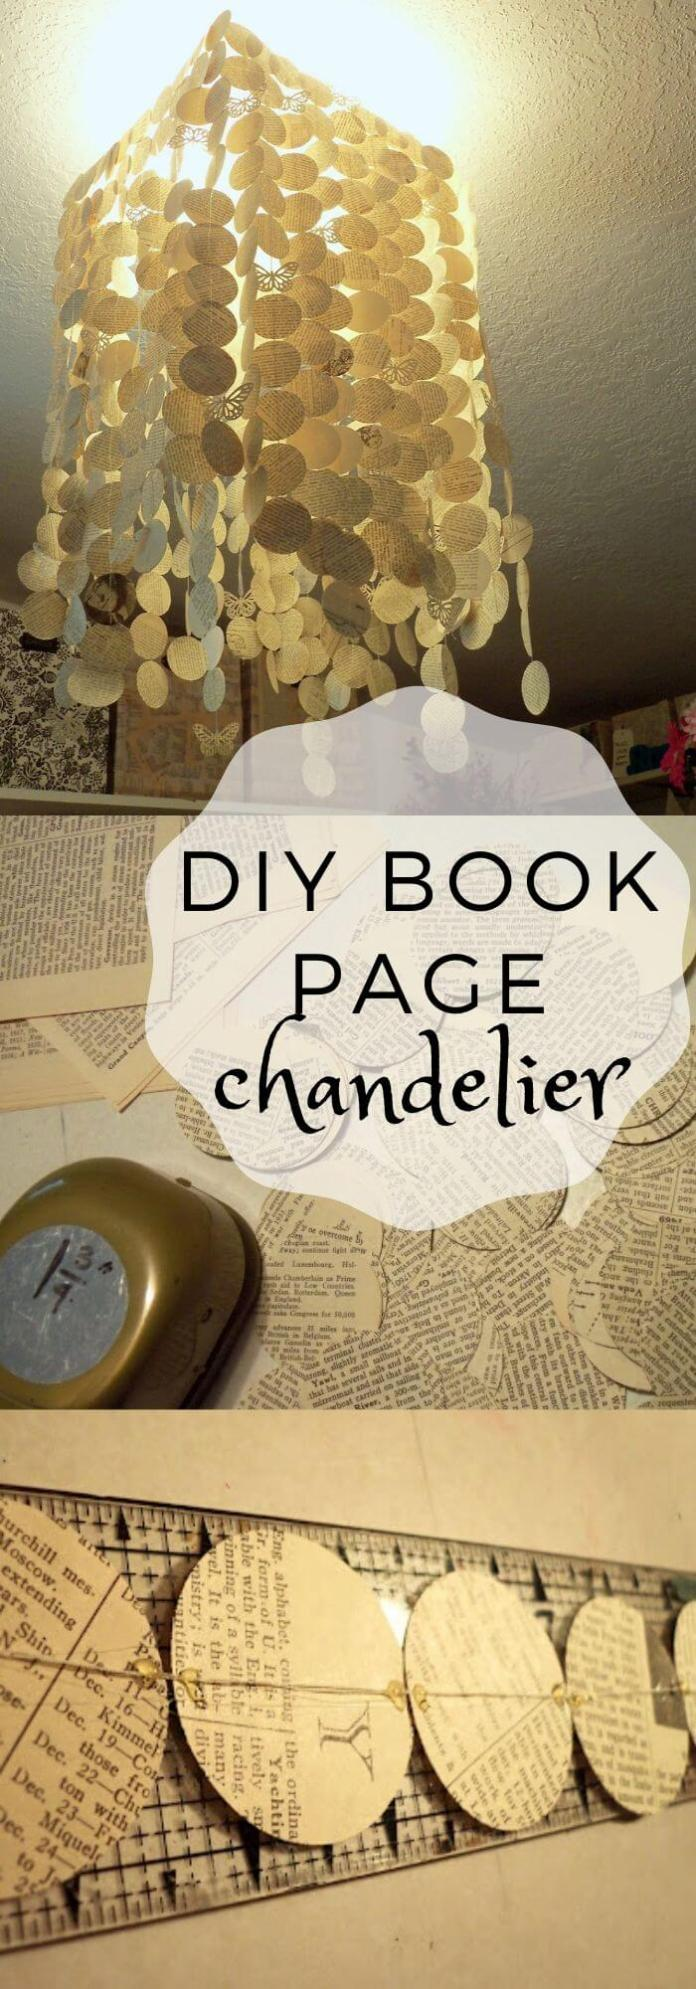 Make a Chandelier from book